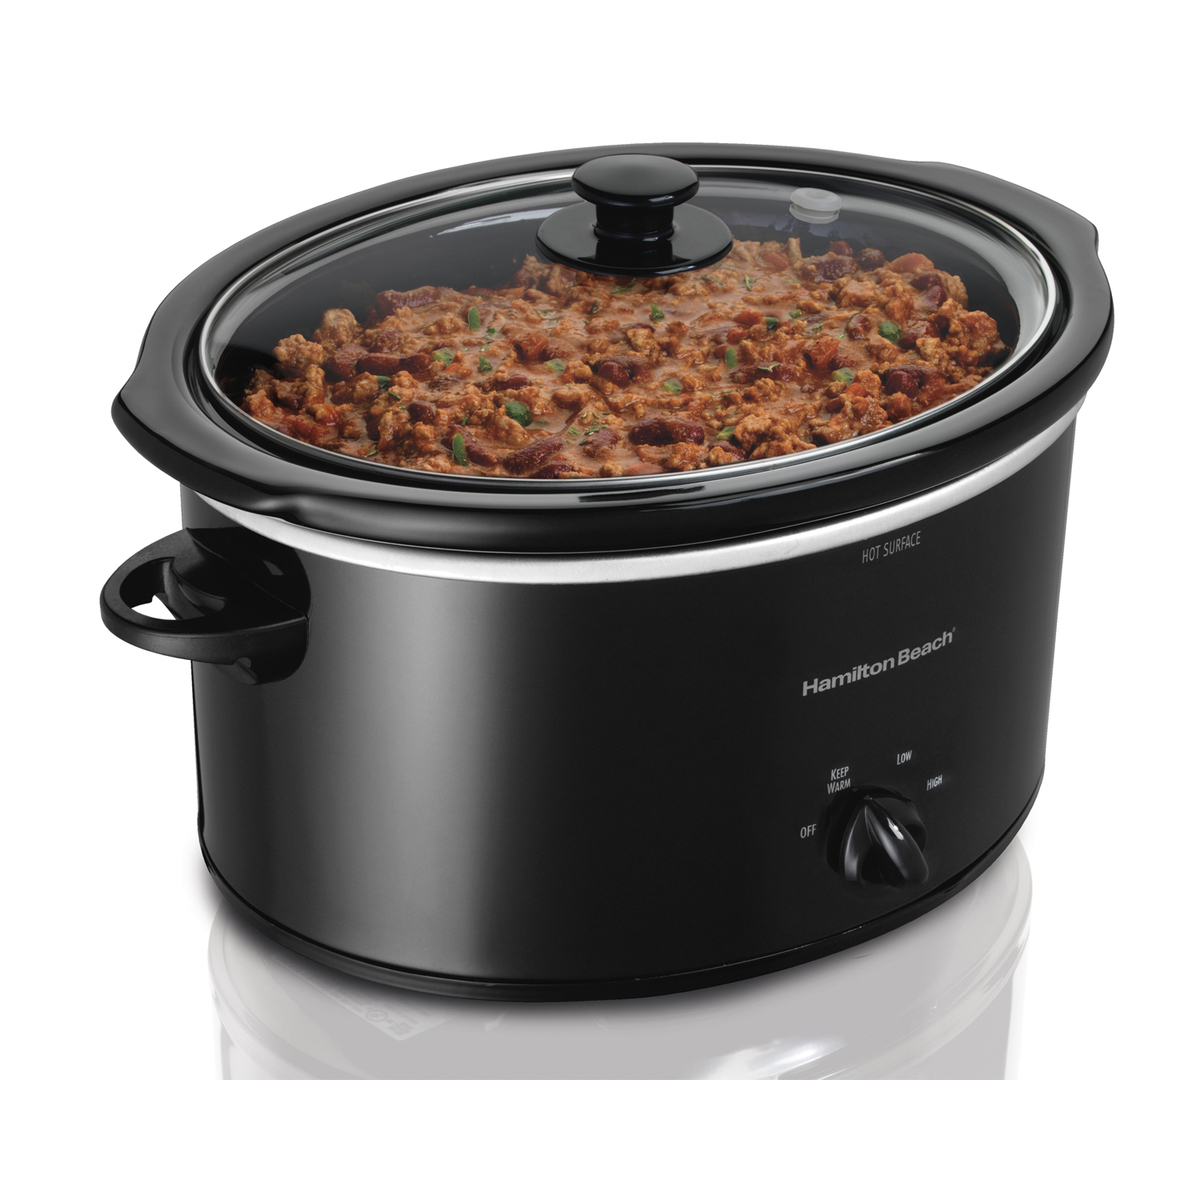 5 Quart Slow Cooker (33258)